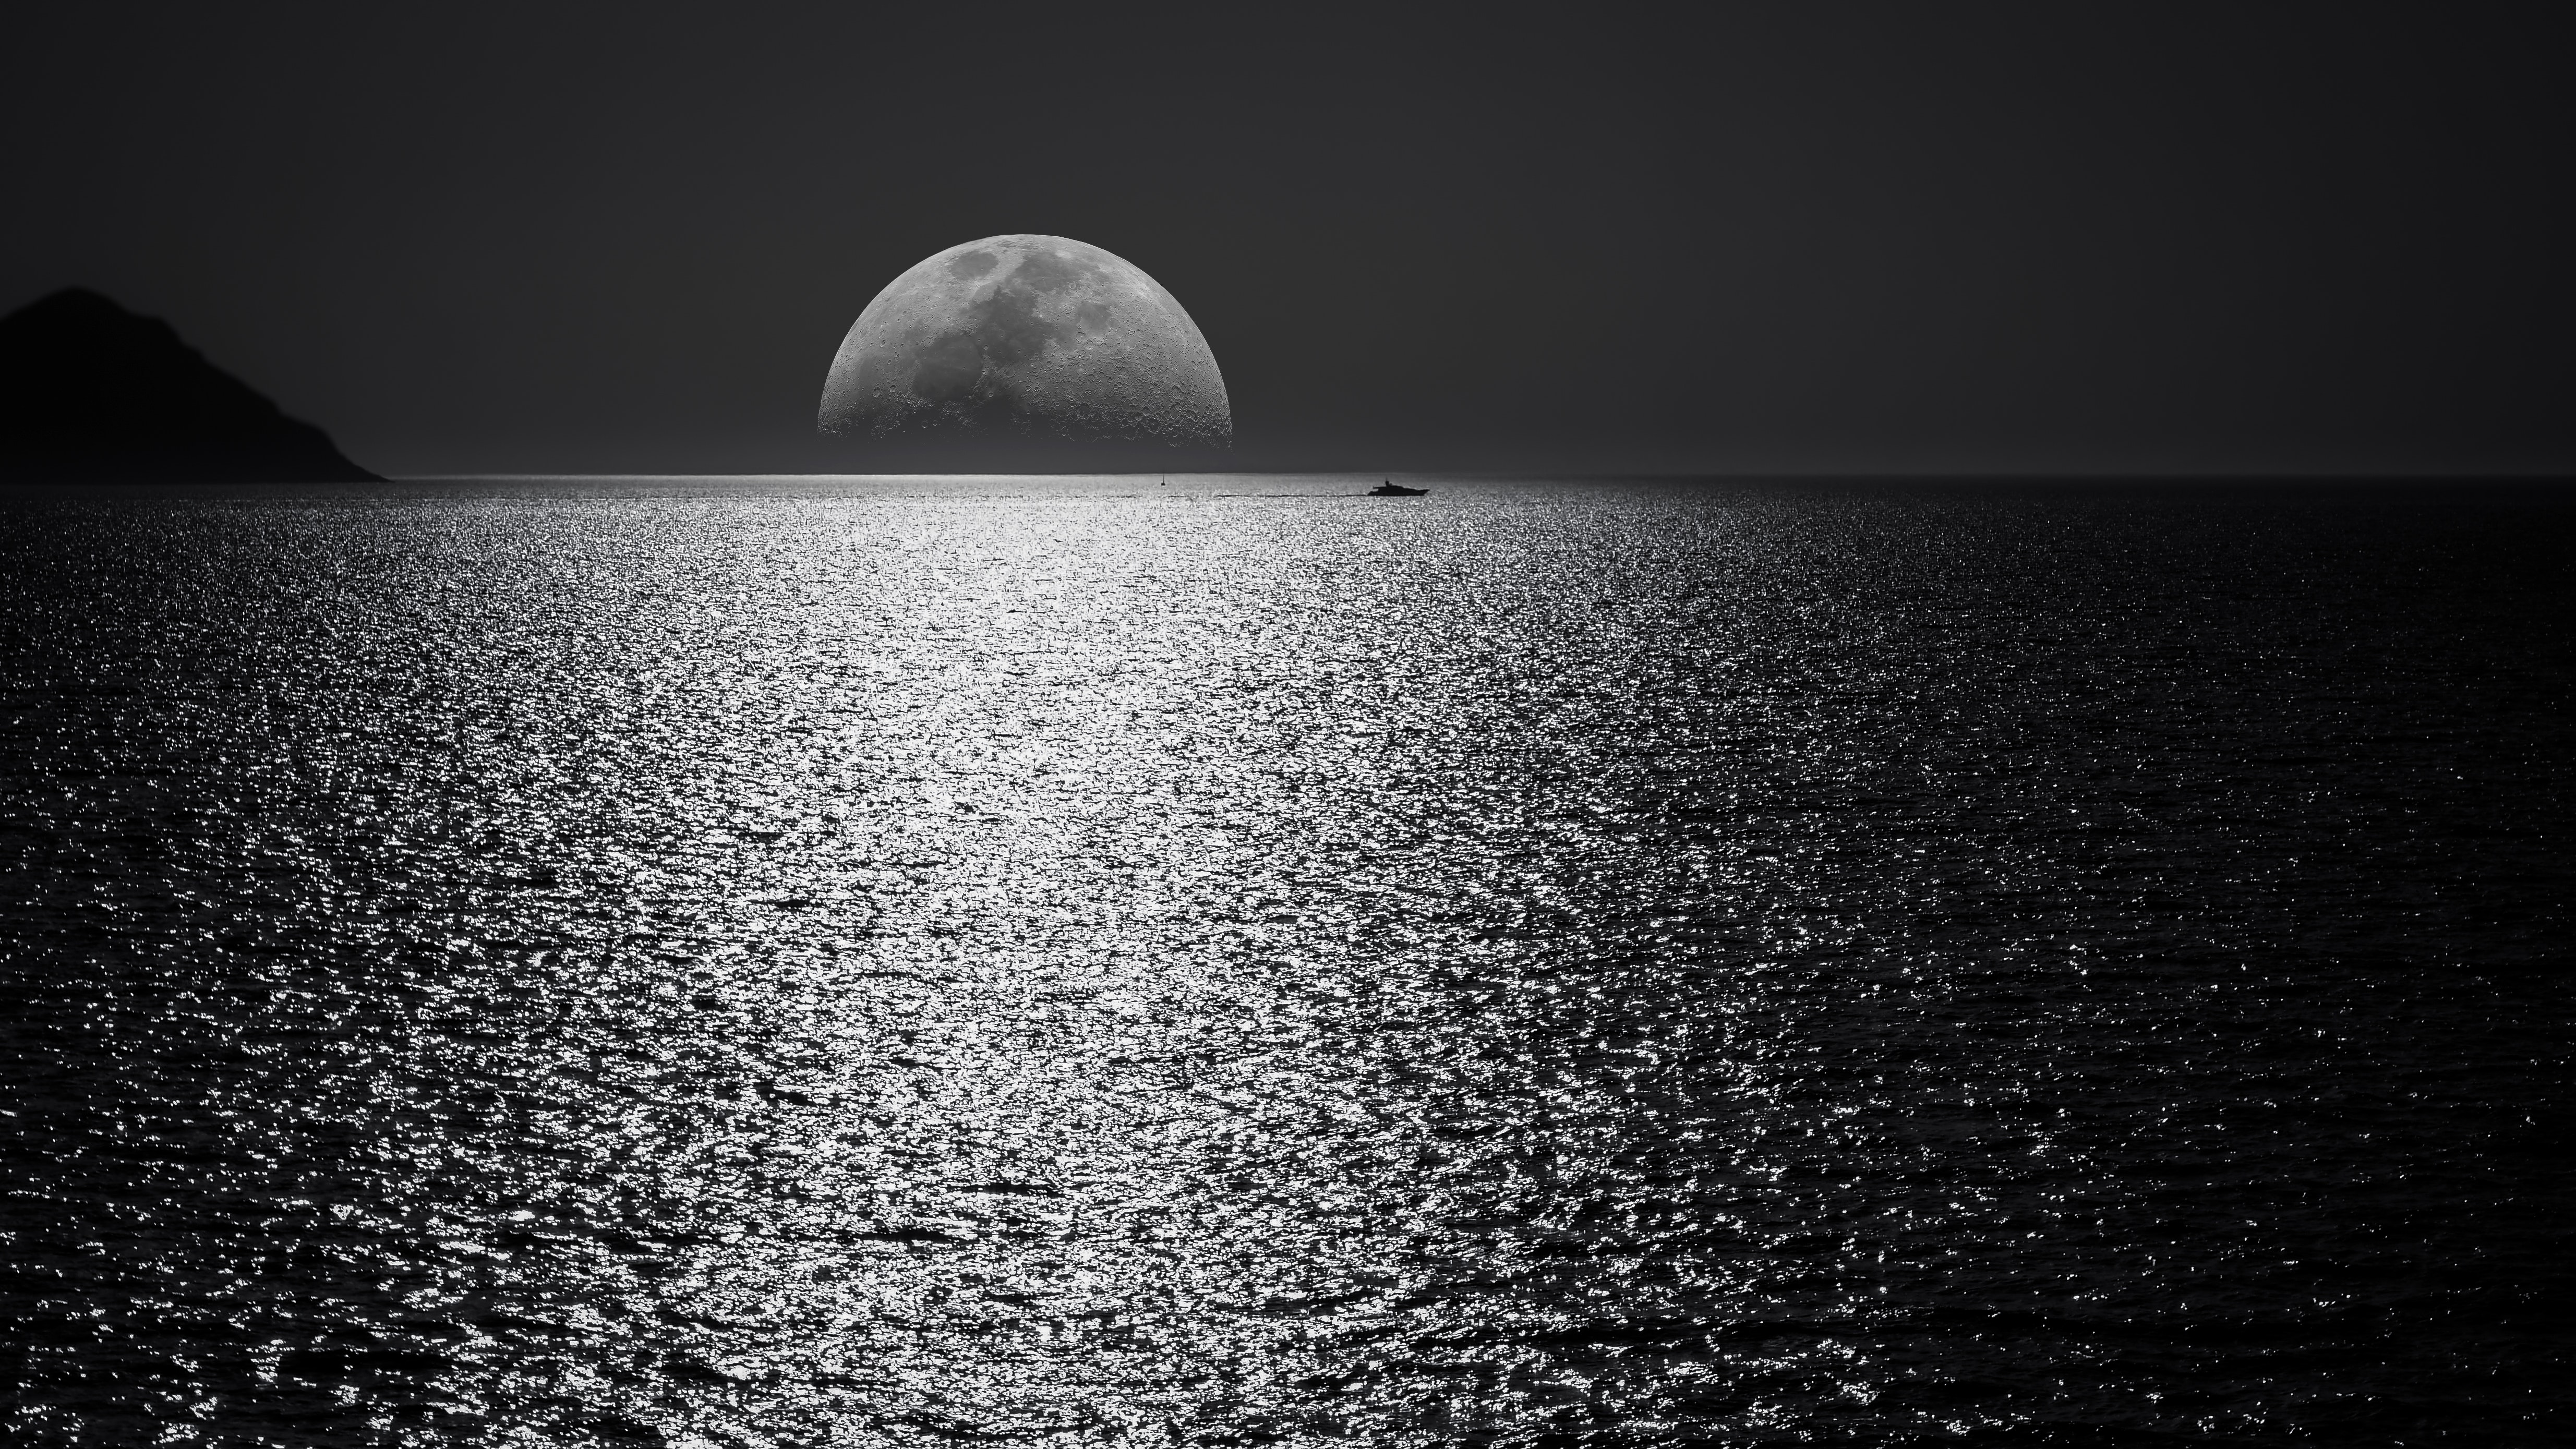 White and black moon with black skies and body of water photography during night time george desipris